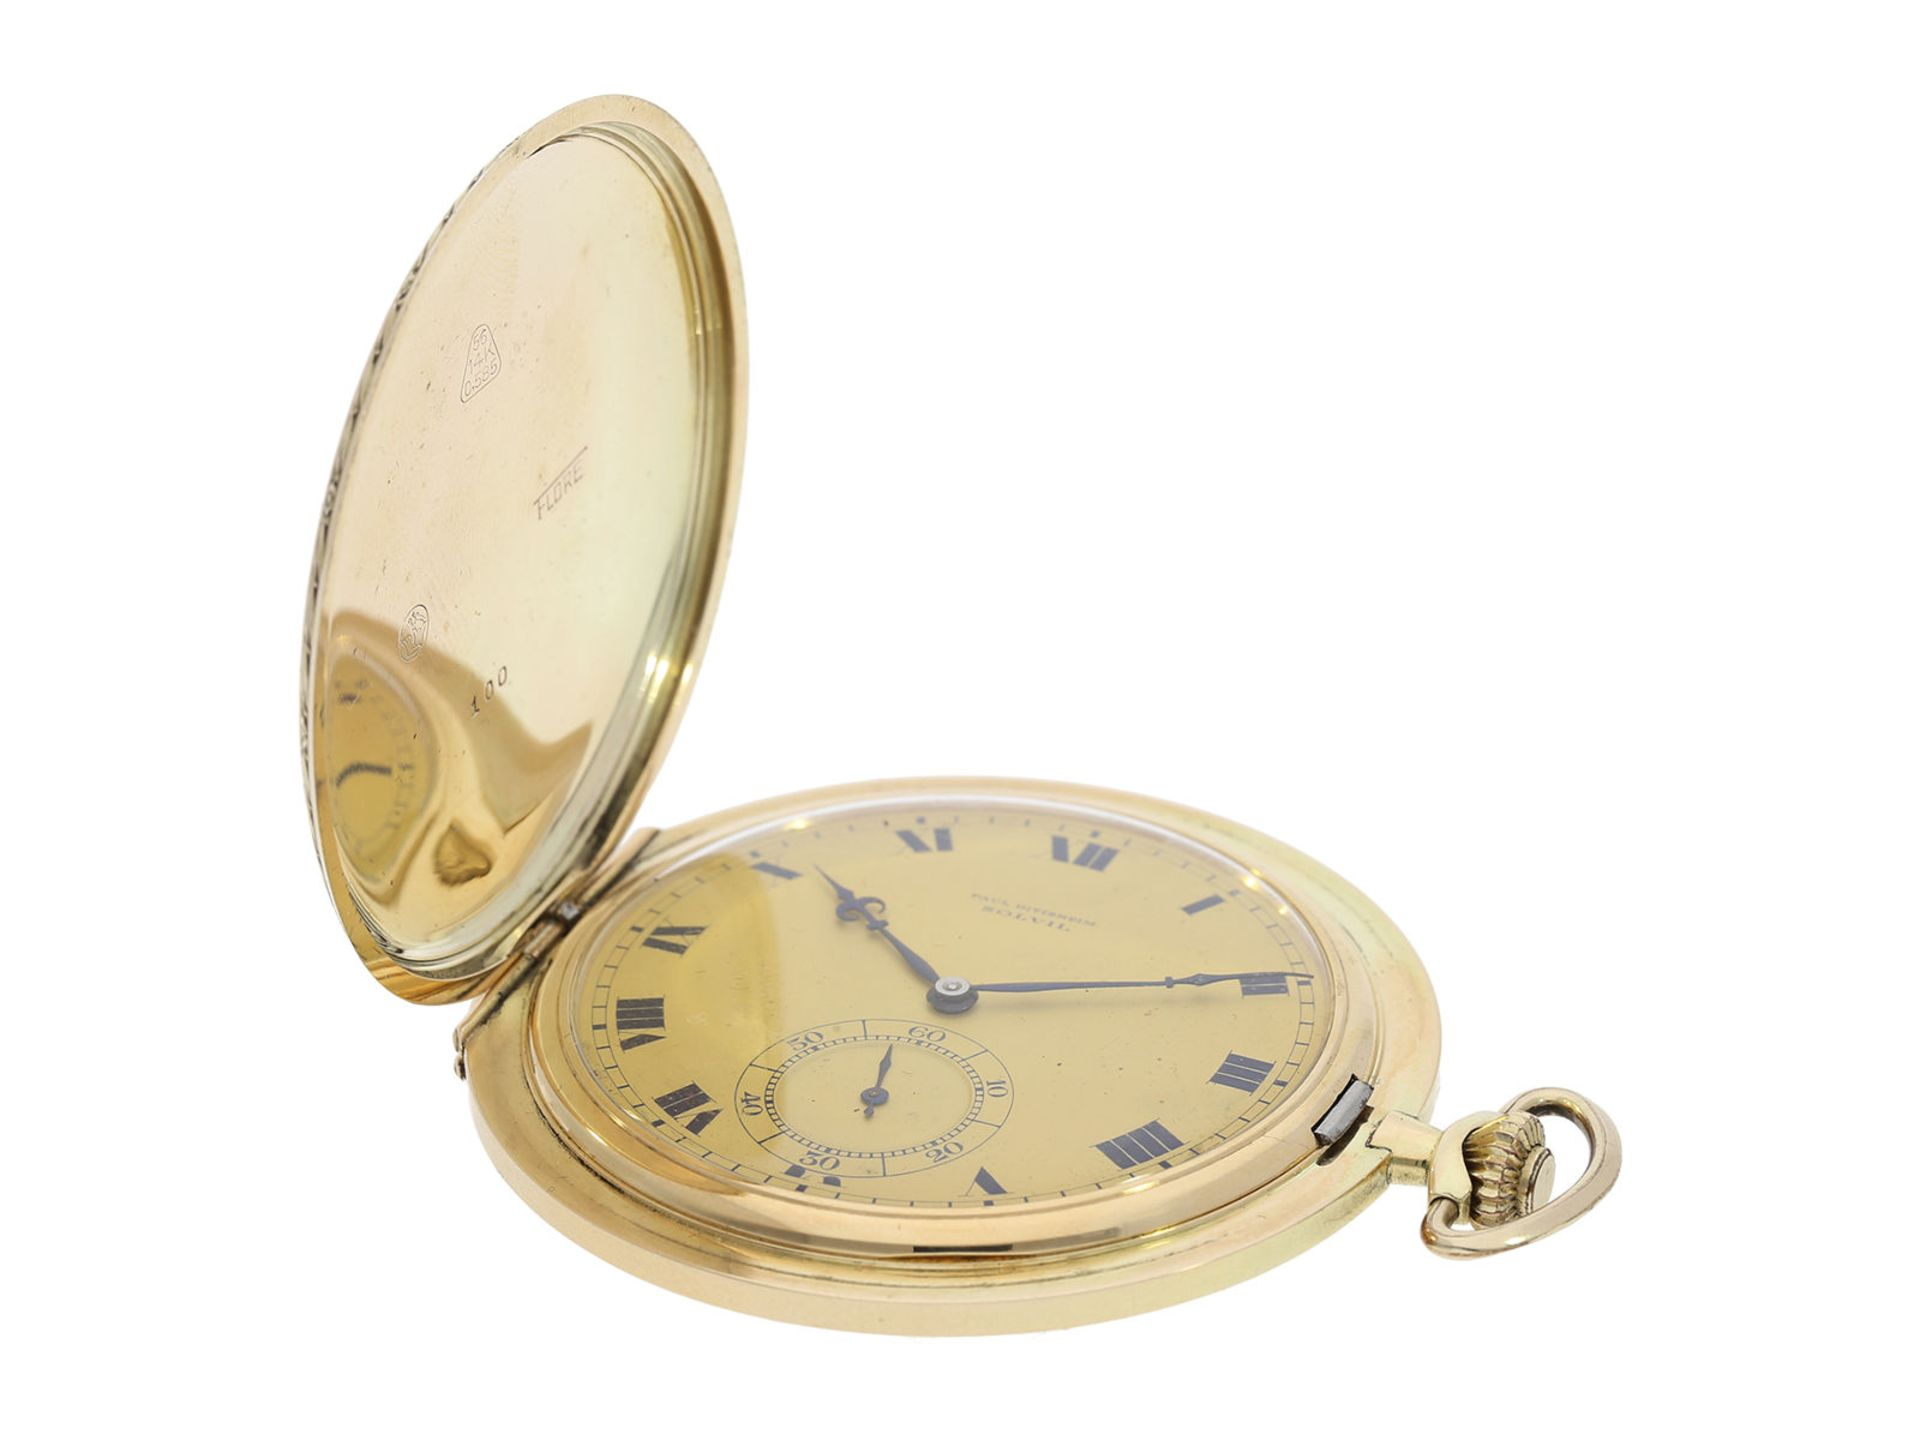 Pocket watch: especially large and elegant Art Deco gold hunting case watch in very good - Bild 2 aus 8